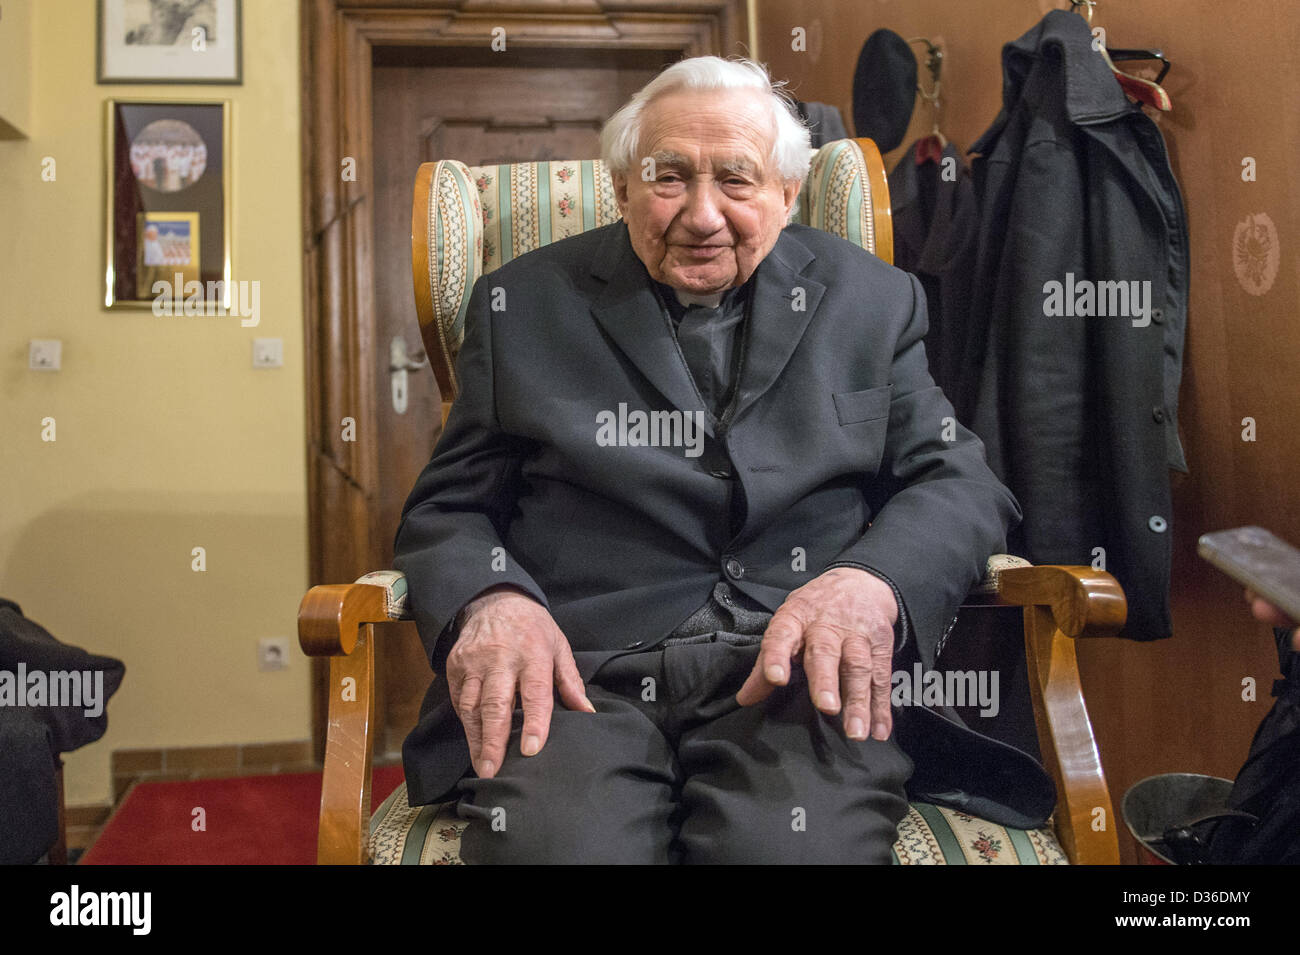 The pope's brother Georg Ratzinger sits in his home in Regensburg,Germany, 11 February 2013. For months, - Stock Image